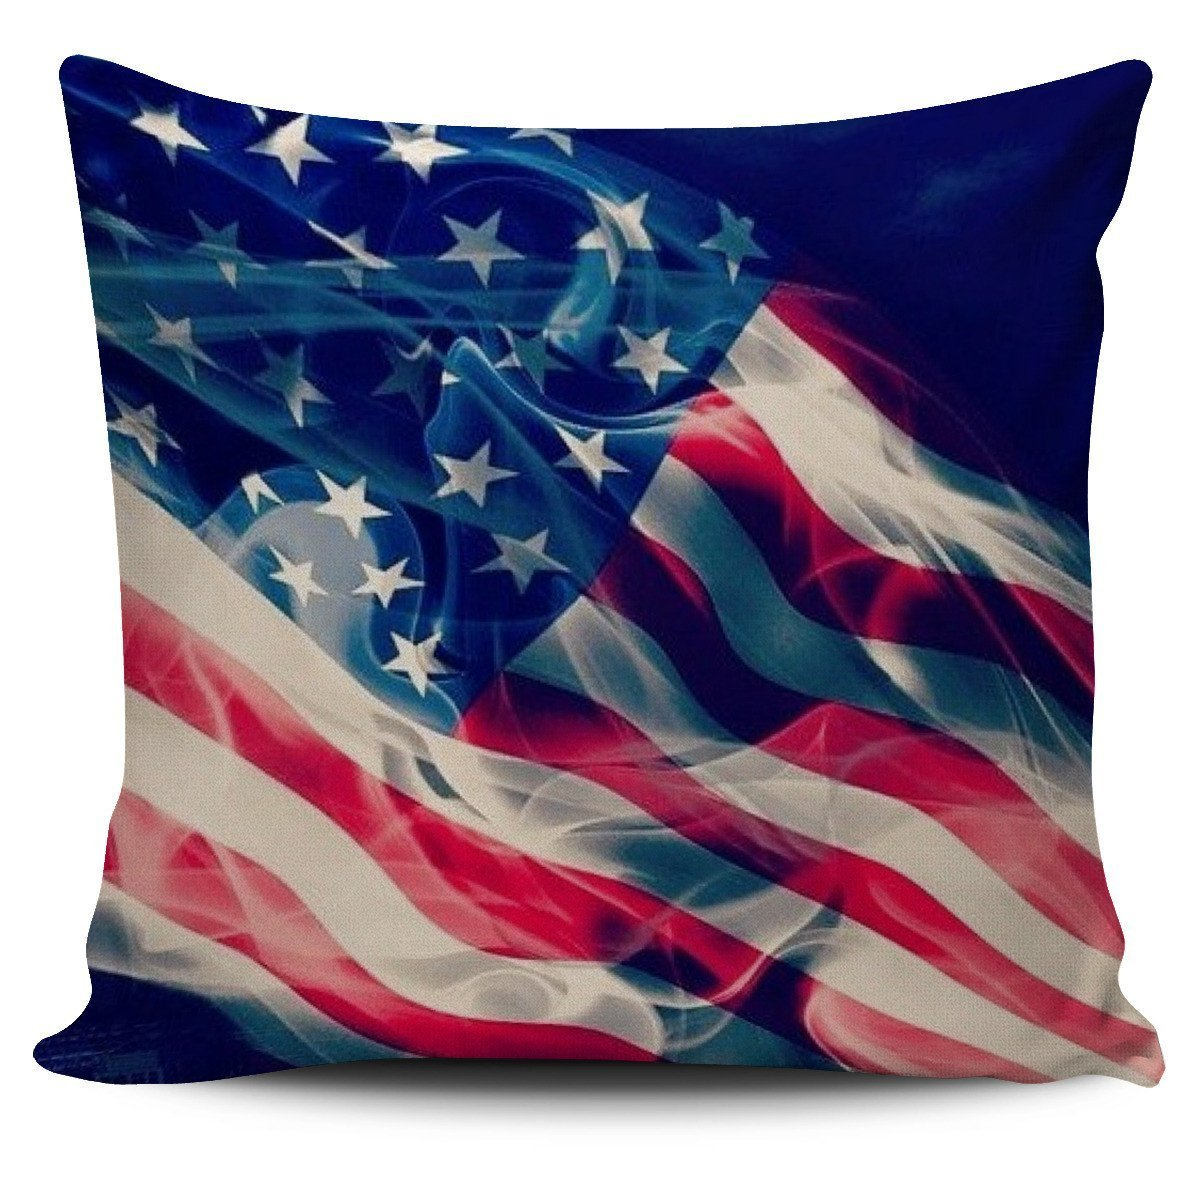 GOD Bless America pillow cover